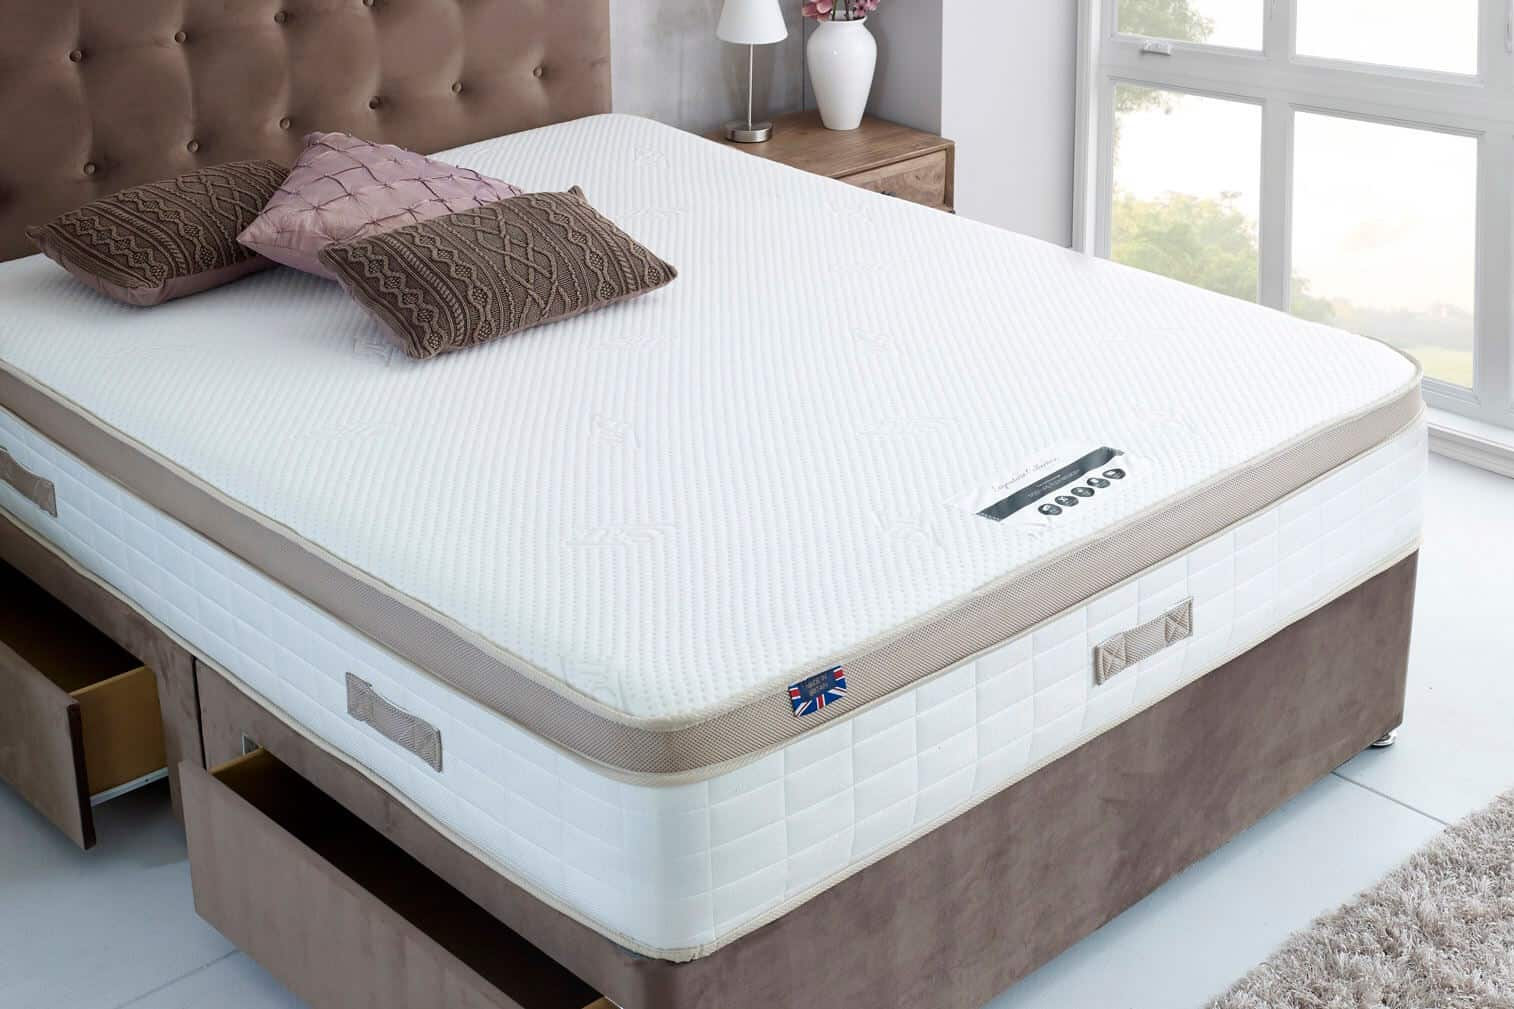 Top 5 Orthopedic Foam Mattresses in India that you can buy Online 1